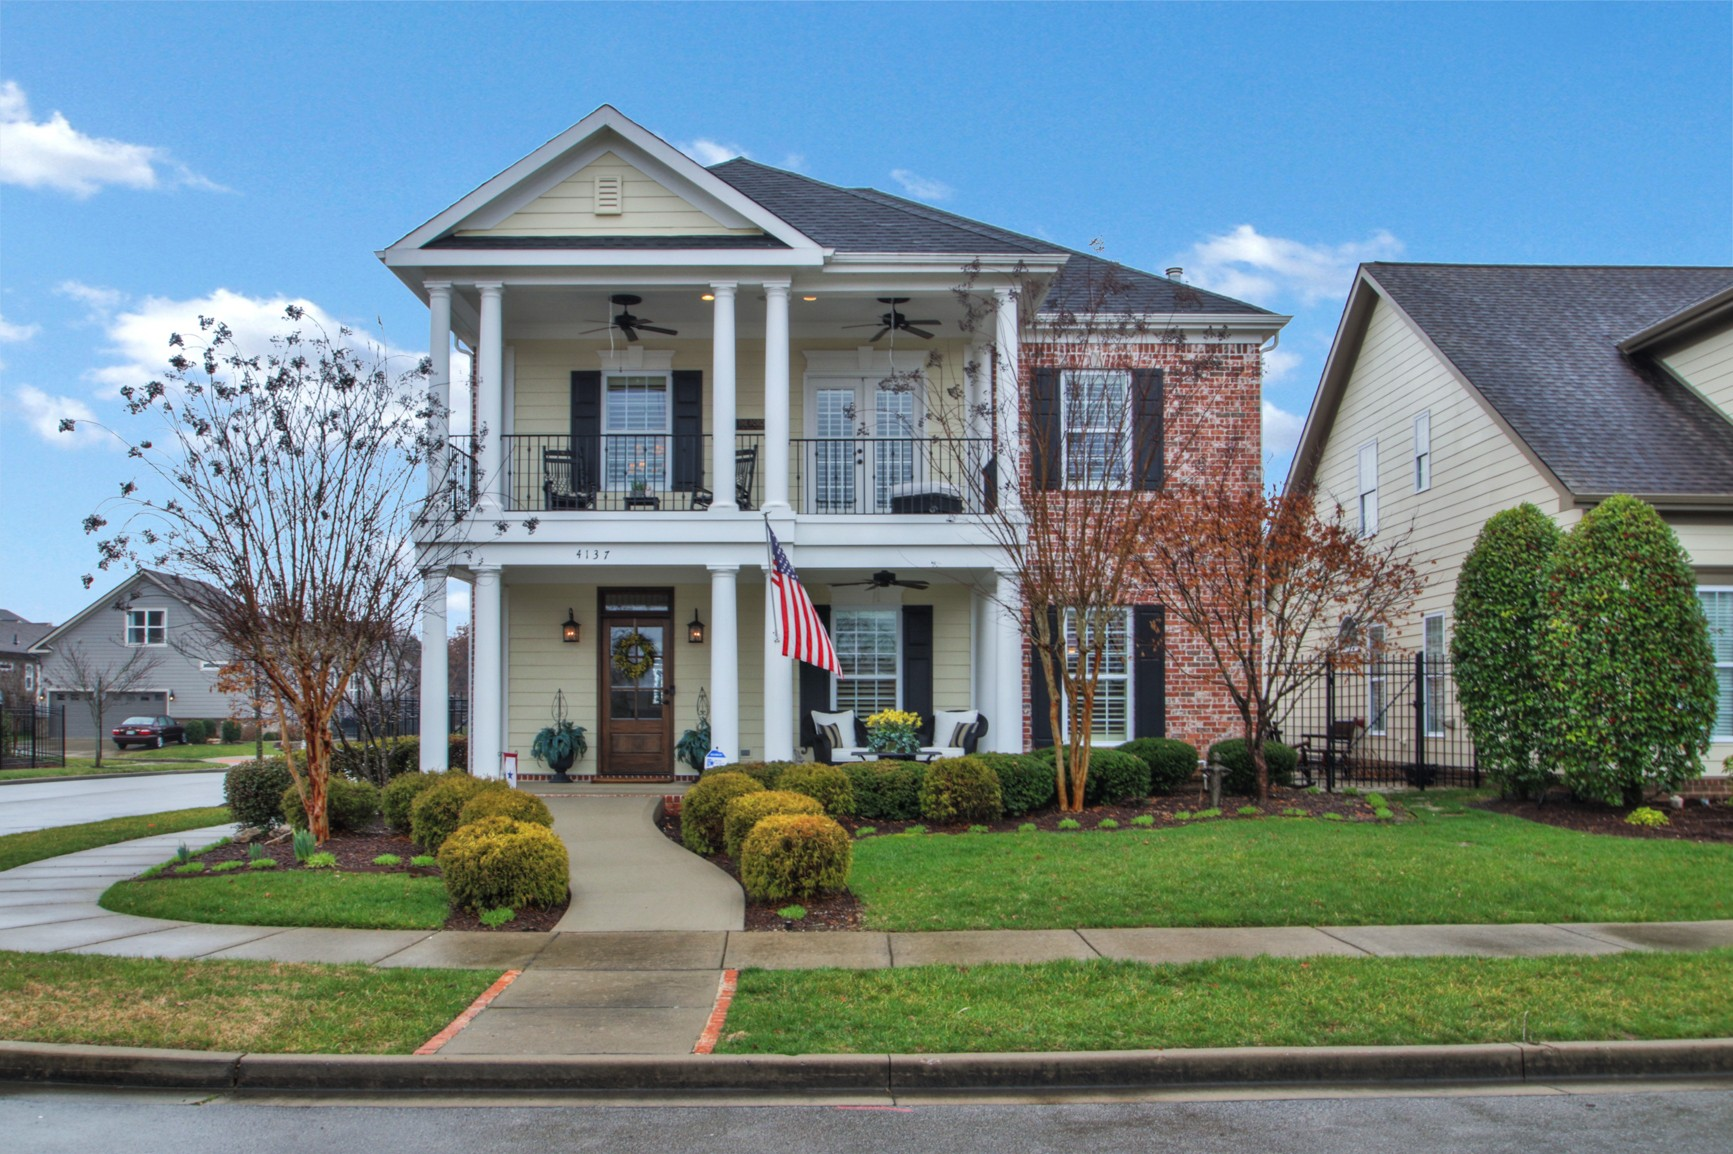 4137 River Links Dr, Spring Hill, Tennessee